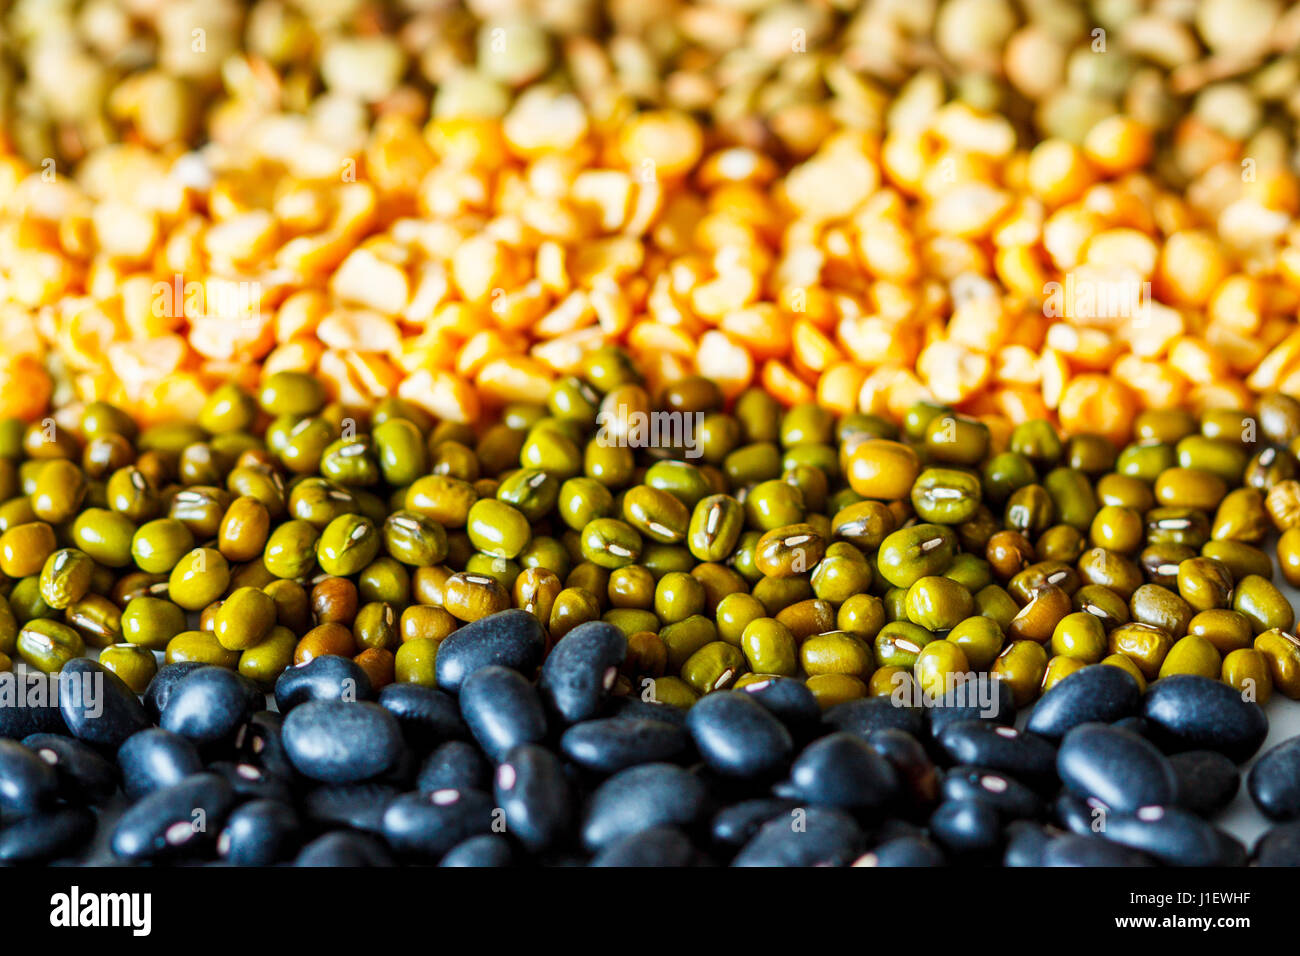 Cereals background: chickpeas, peas, lentils, black beans - Stock Image